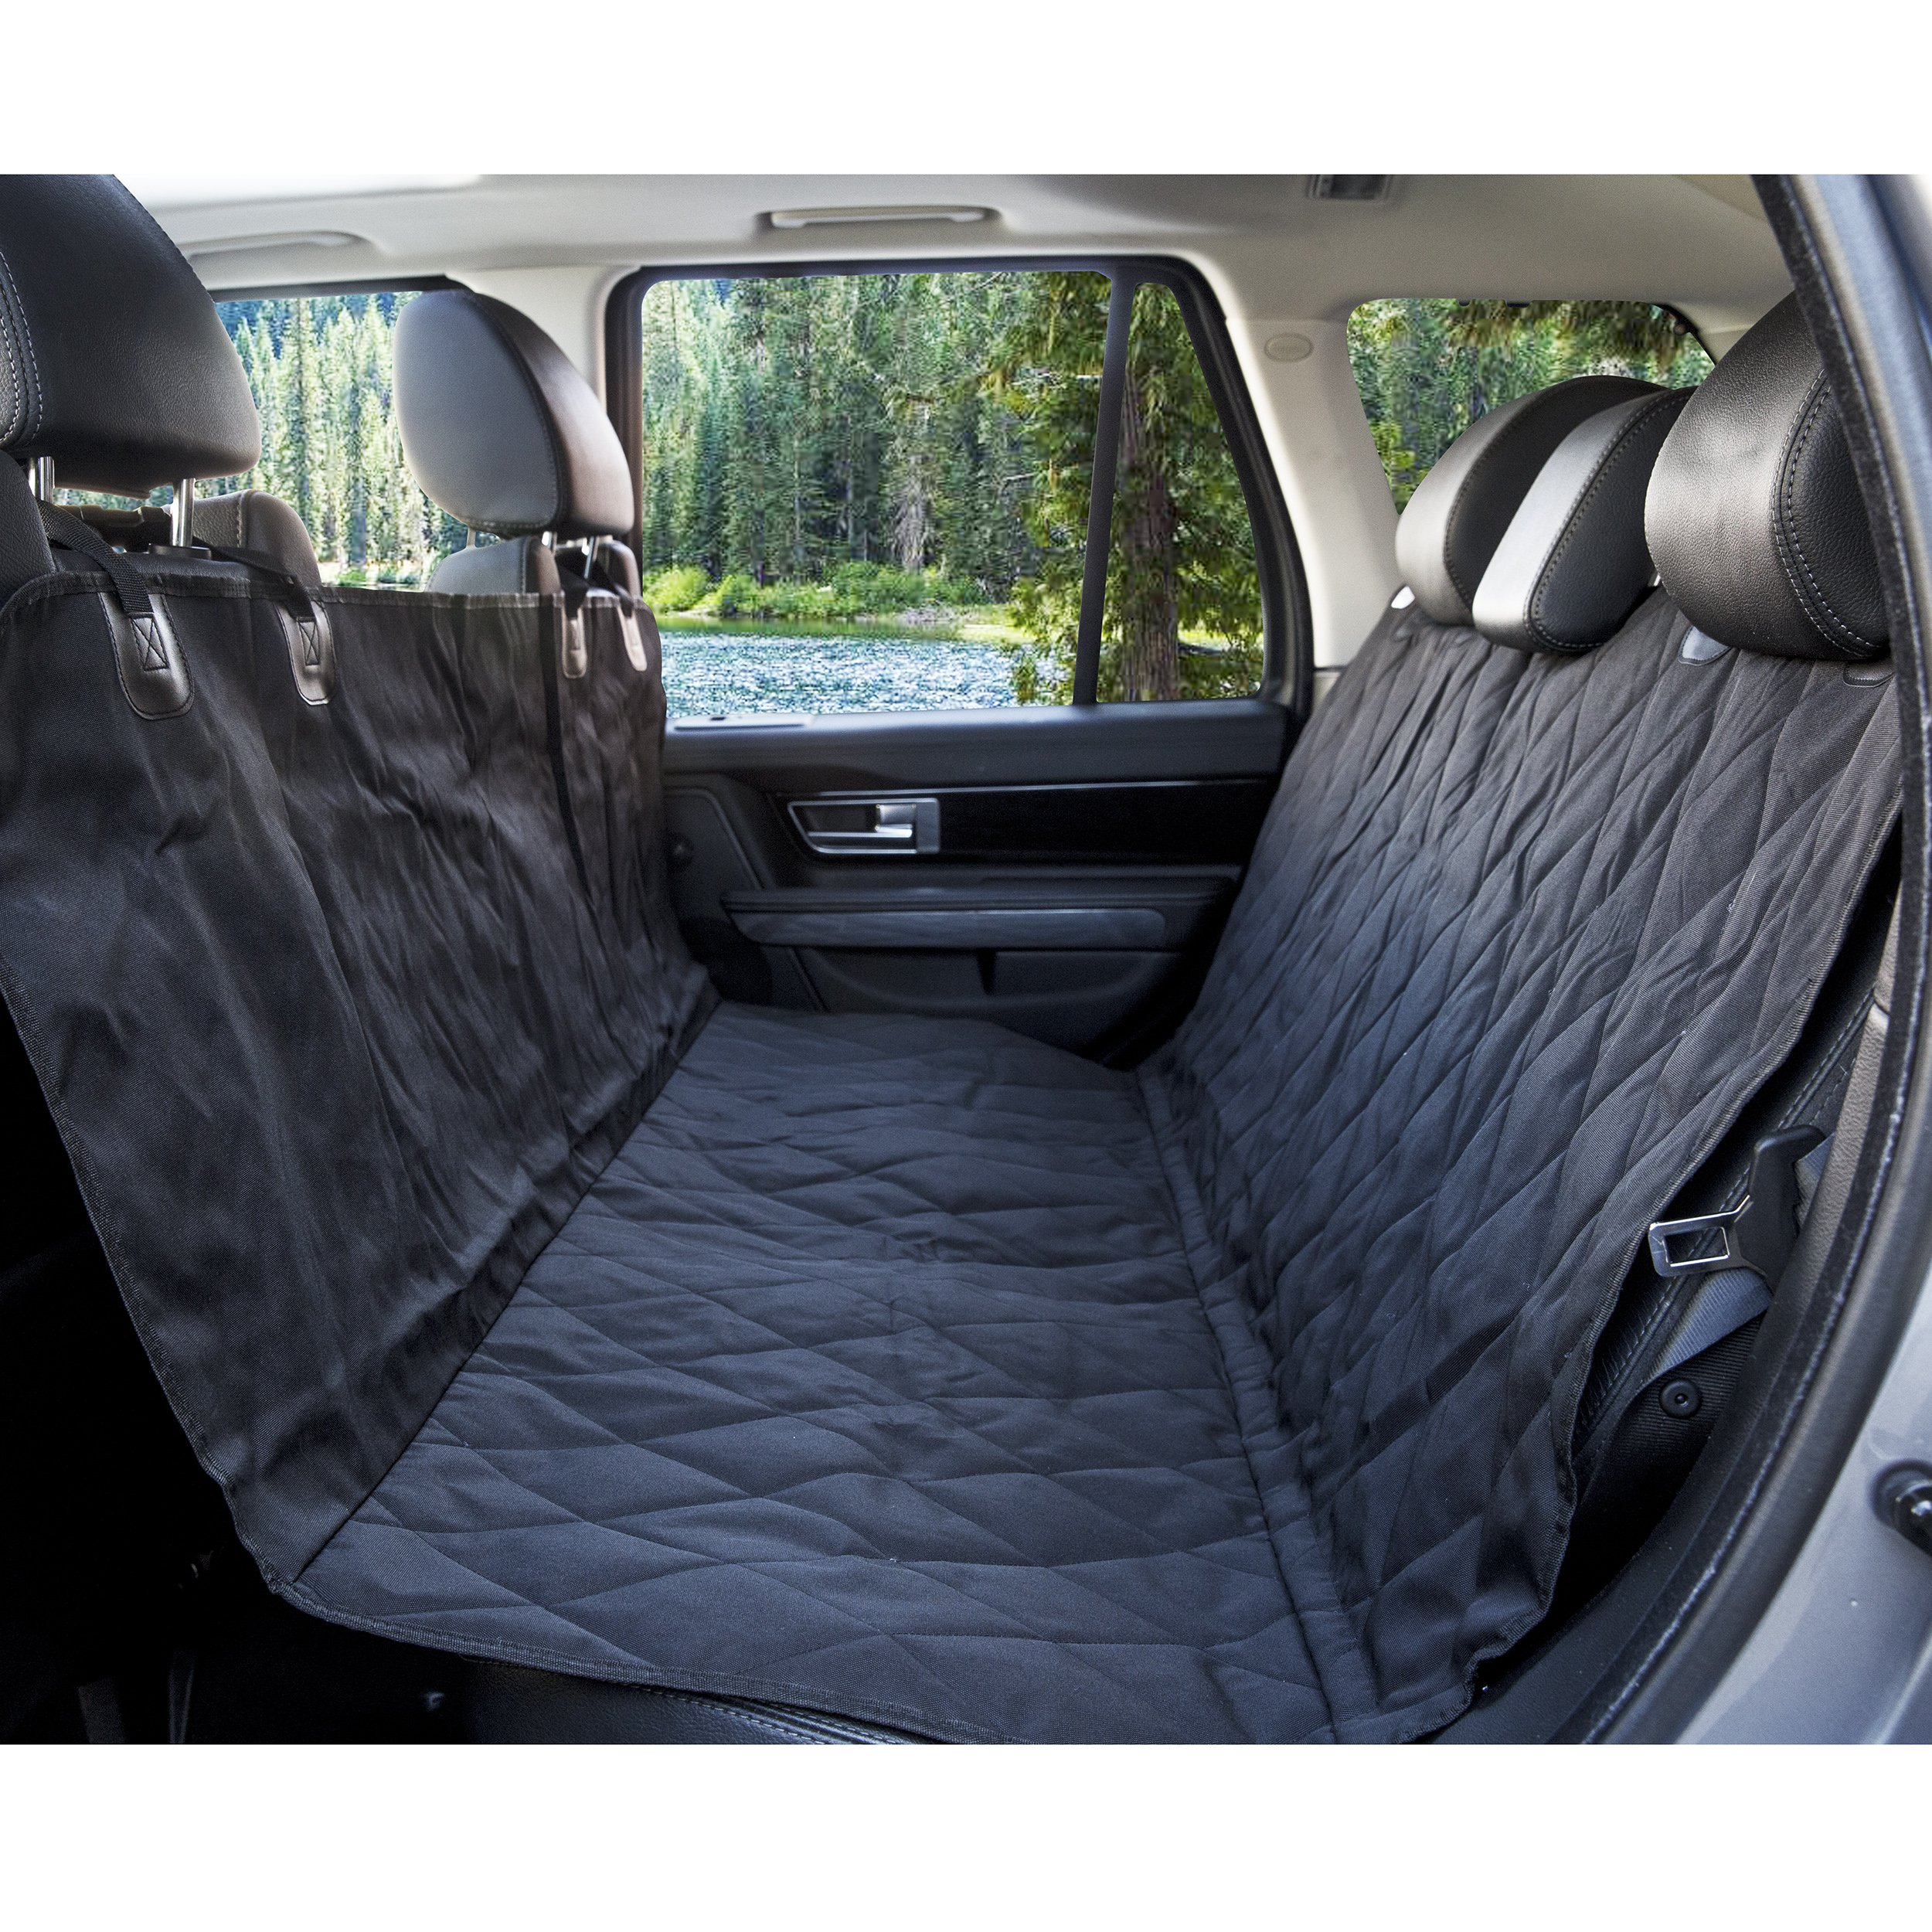 BarksBar Pet Car Seat Cover with Seat Anchors for Cars, Trucks and SUV's, Water Proof and Non-Slip Backing Regular, Black by BarksBar (Image #4)